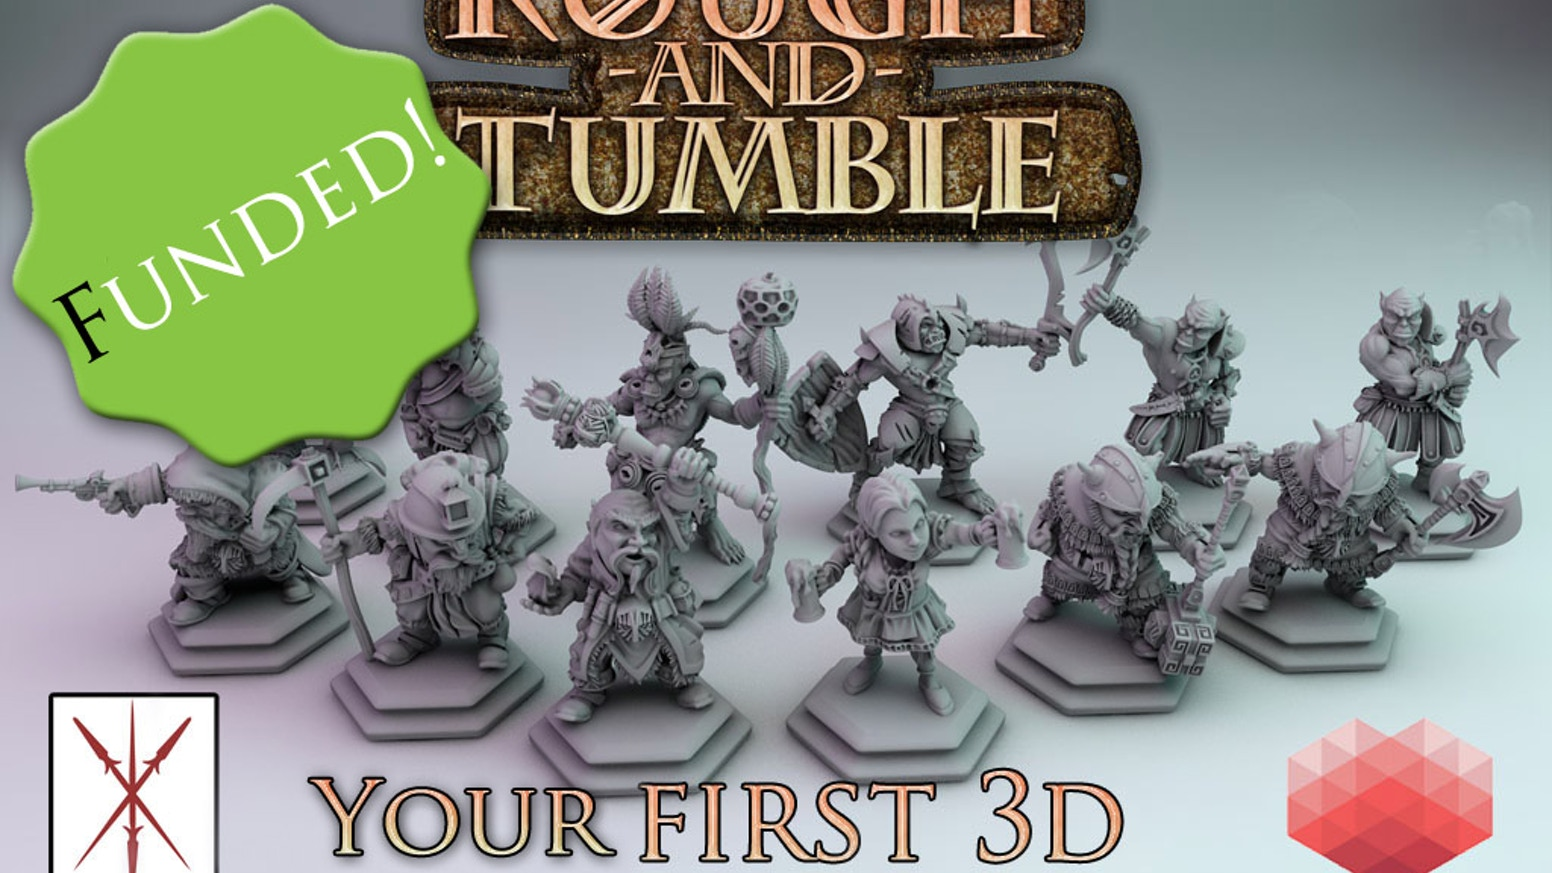 Rough-and-Tumble is a chess-like board game with 28 mm, 32mm or even bigger miniatures! Designed for your 3D printer